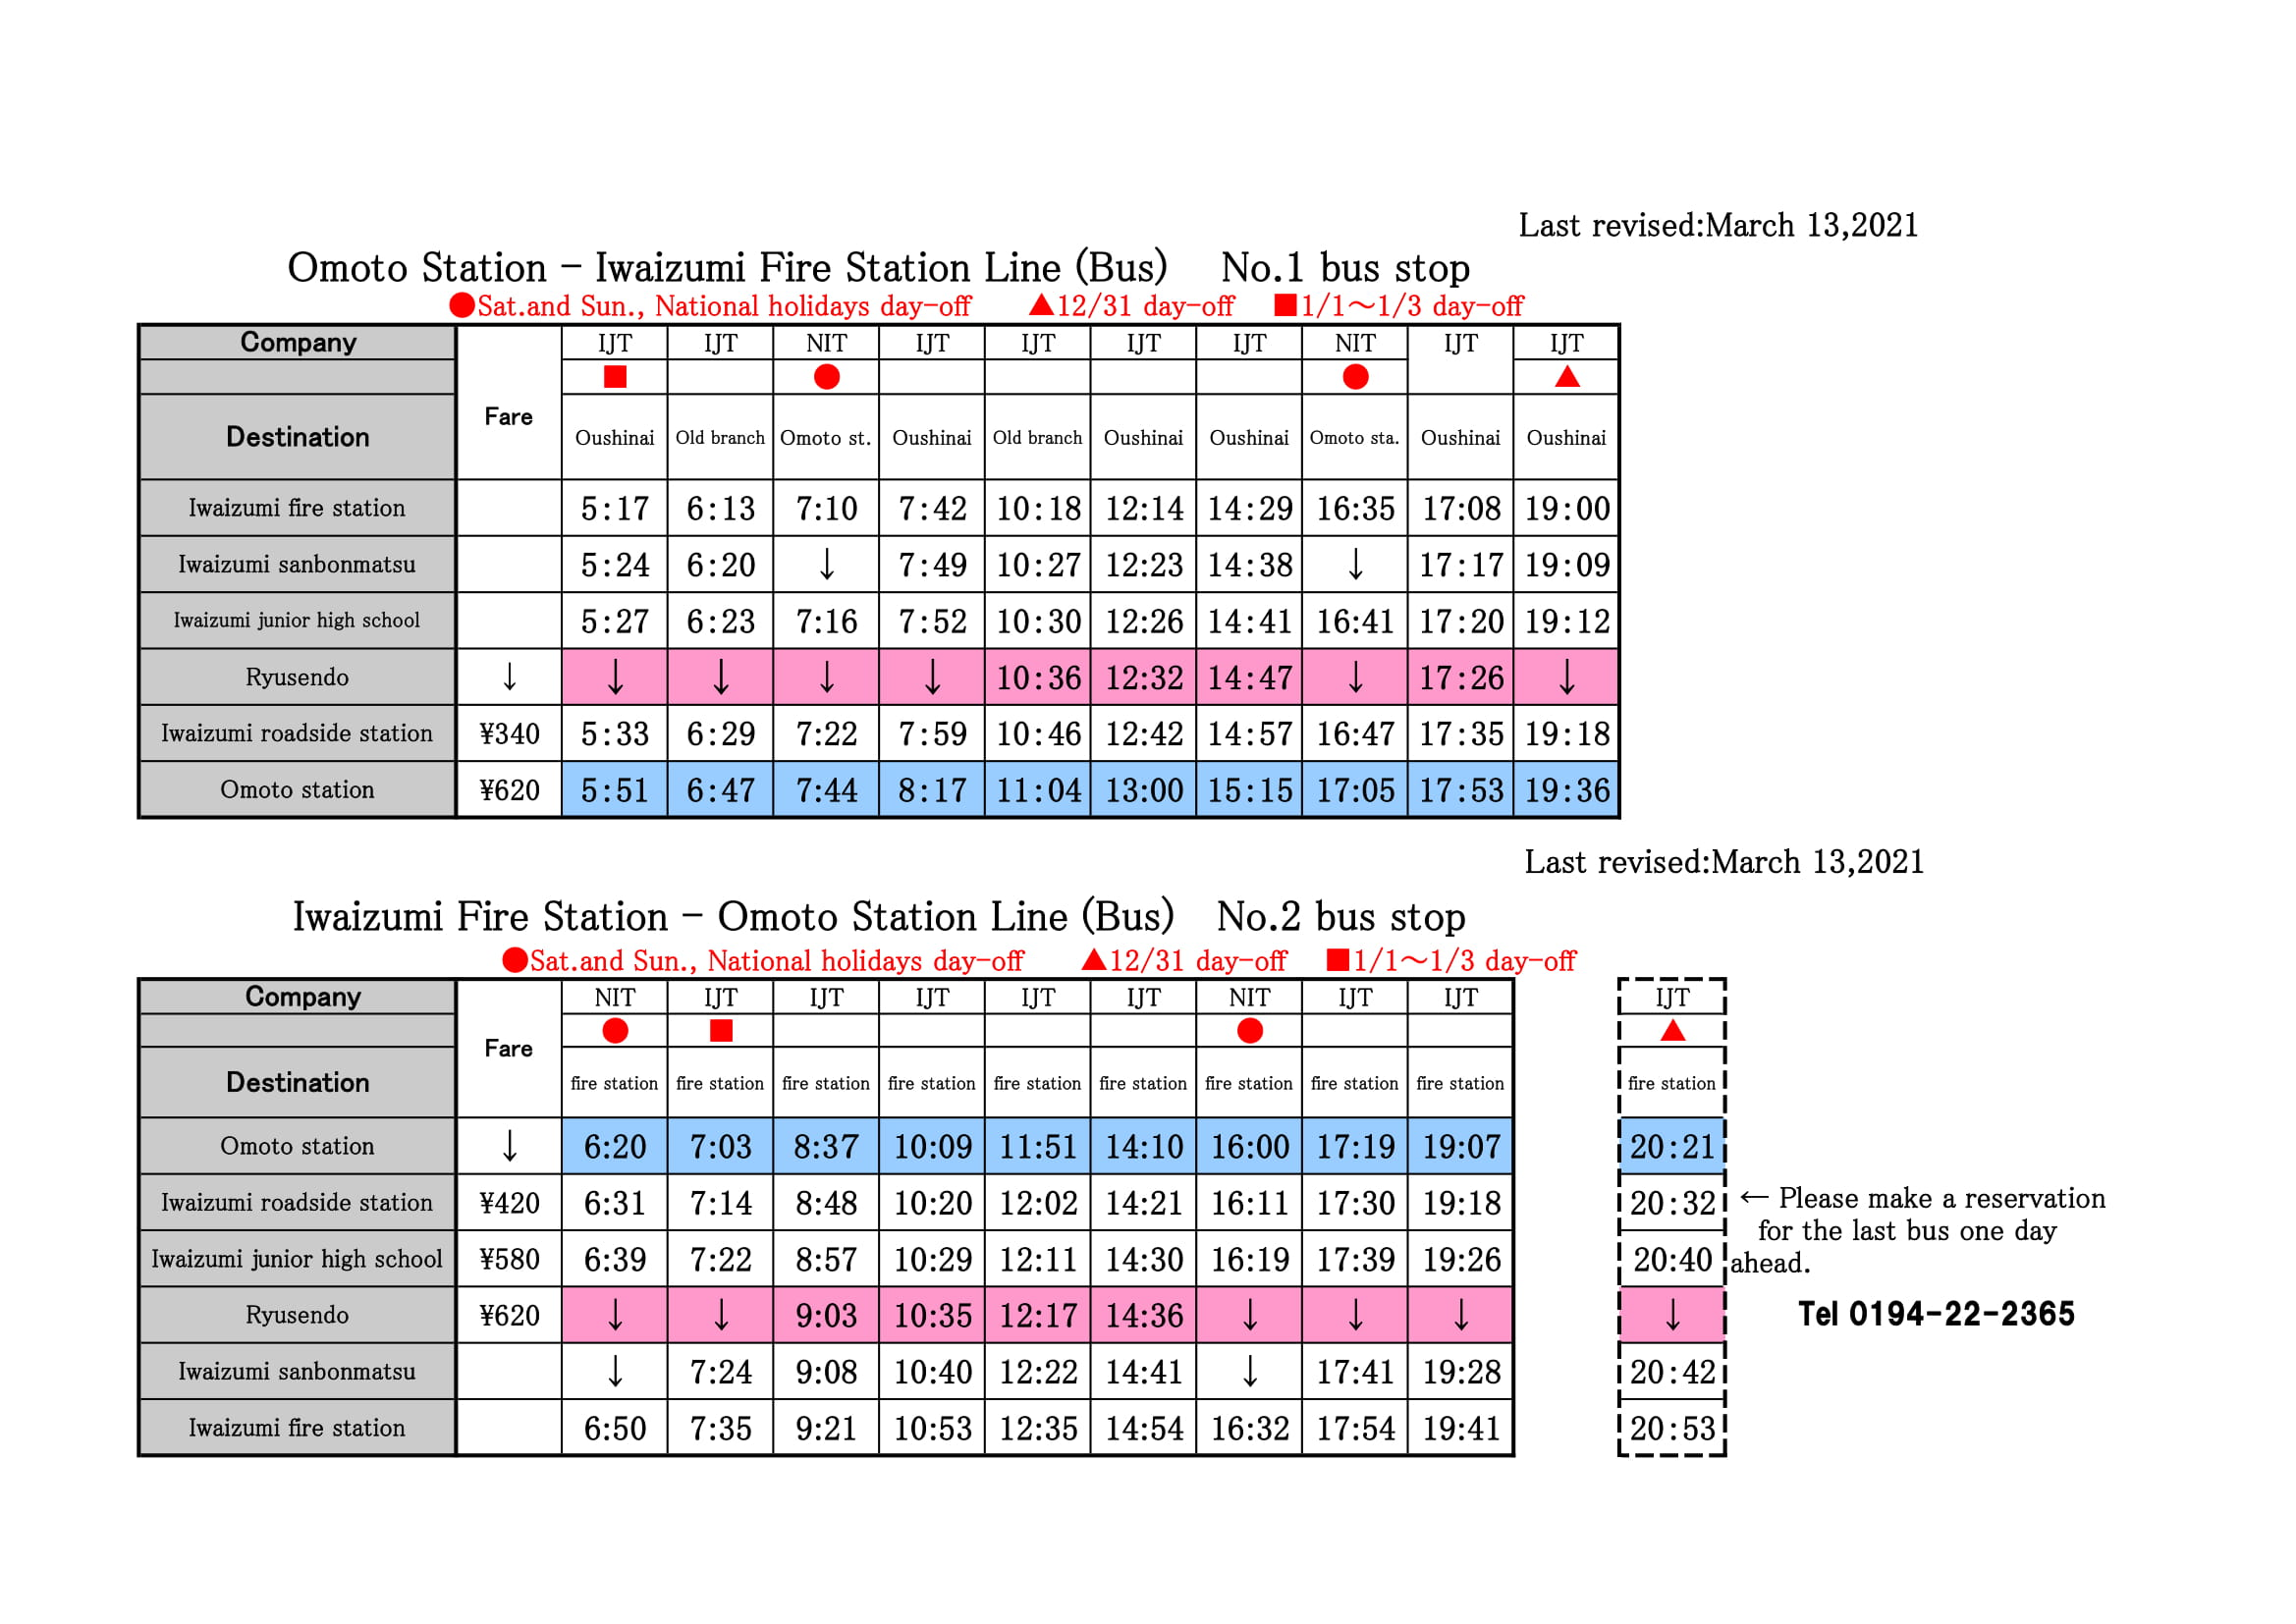 Timetable(Last revised:March 13, 2021)